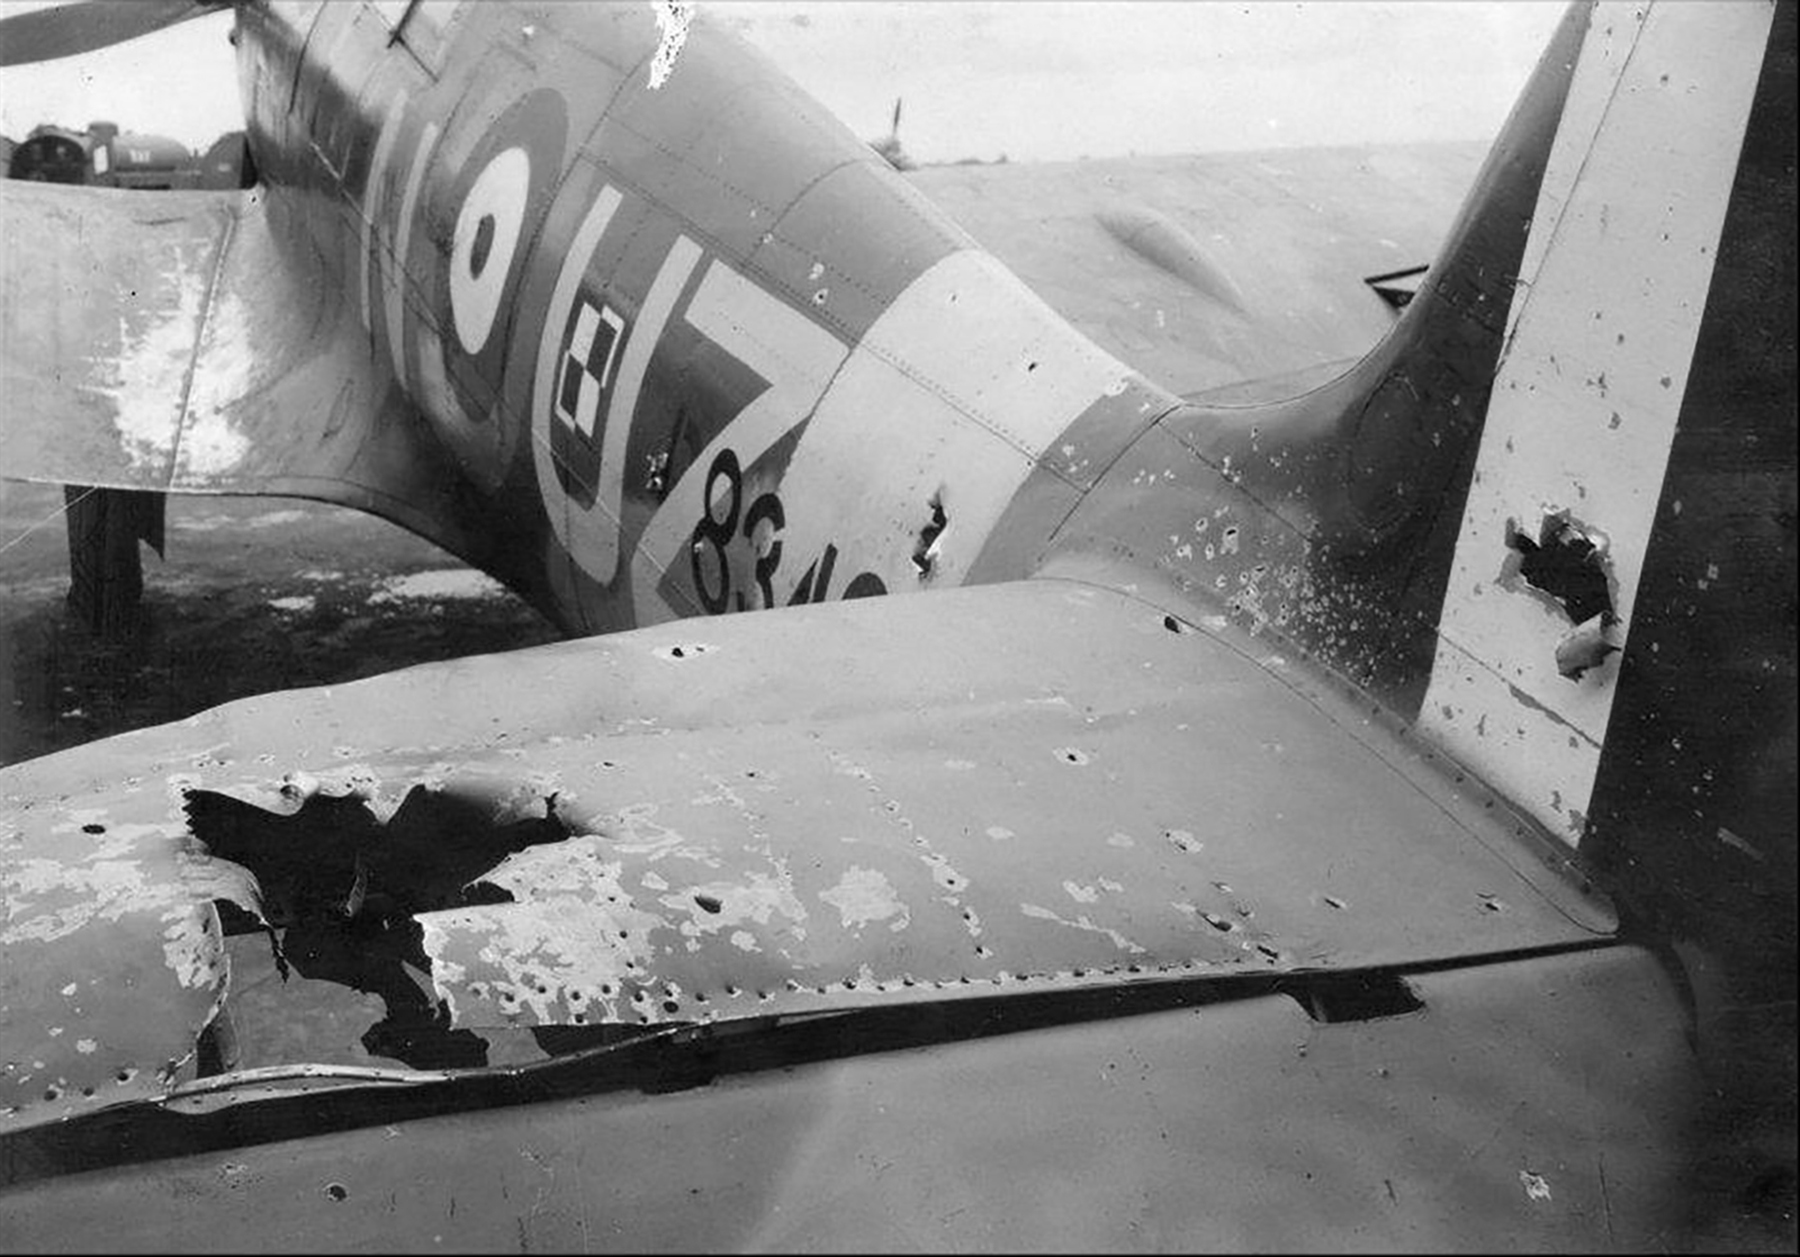 Spitfire MkIIb RAF 306Sqn Polish UZN P8342 damaged after Circus 88 based RAF Northolt 29th Aug 1942 01